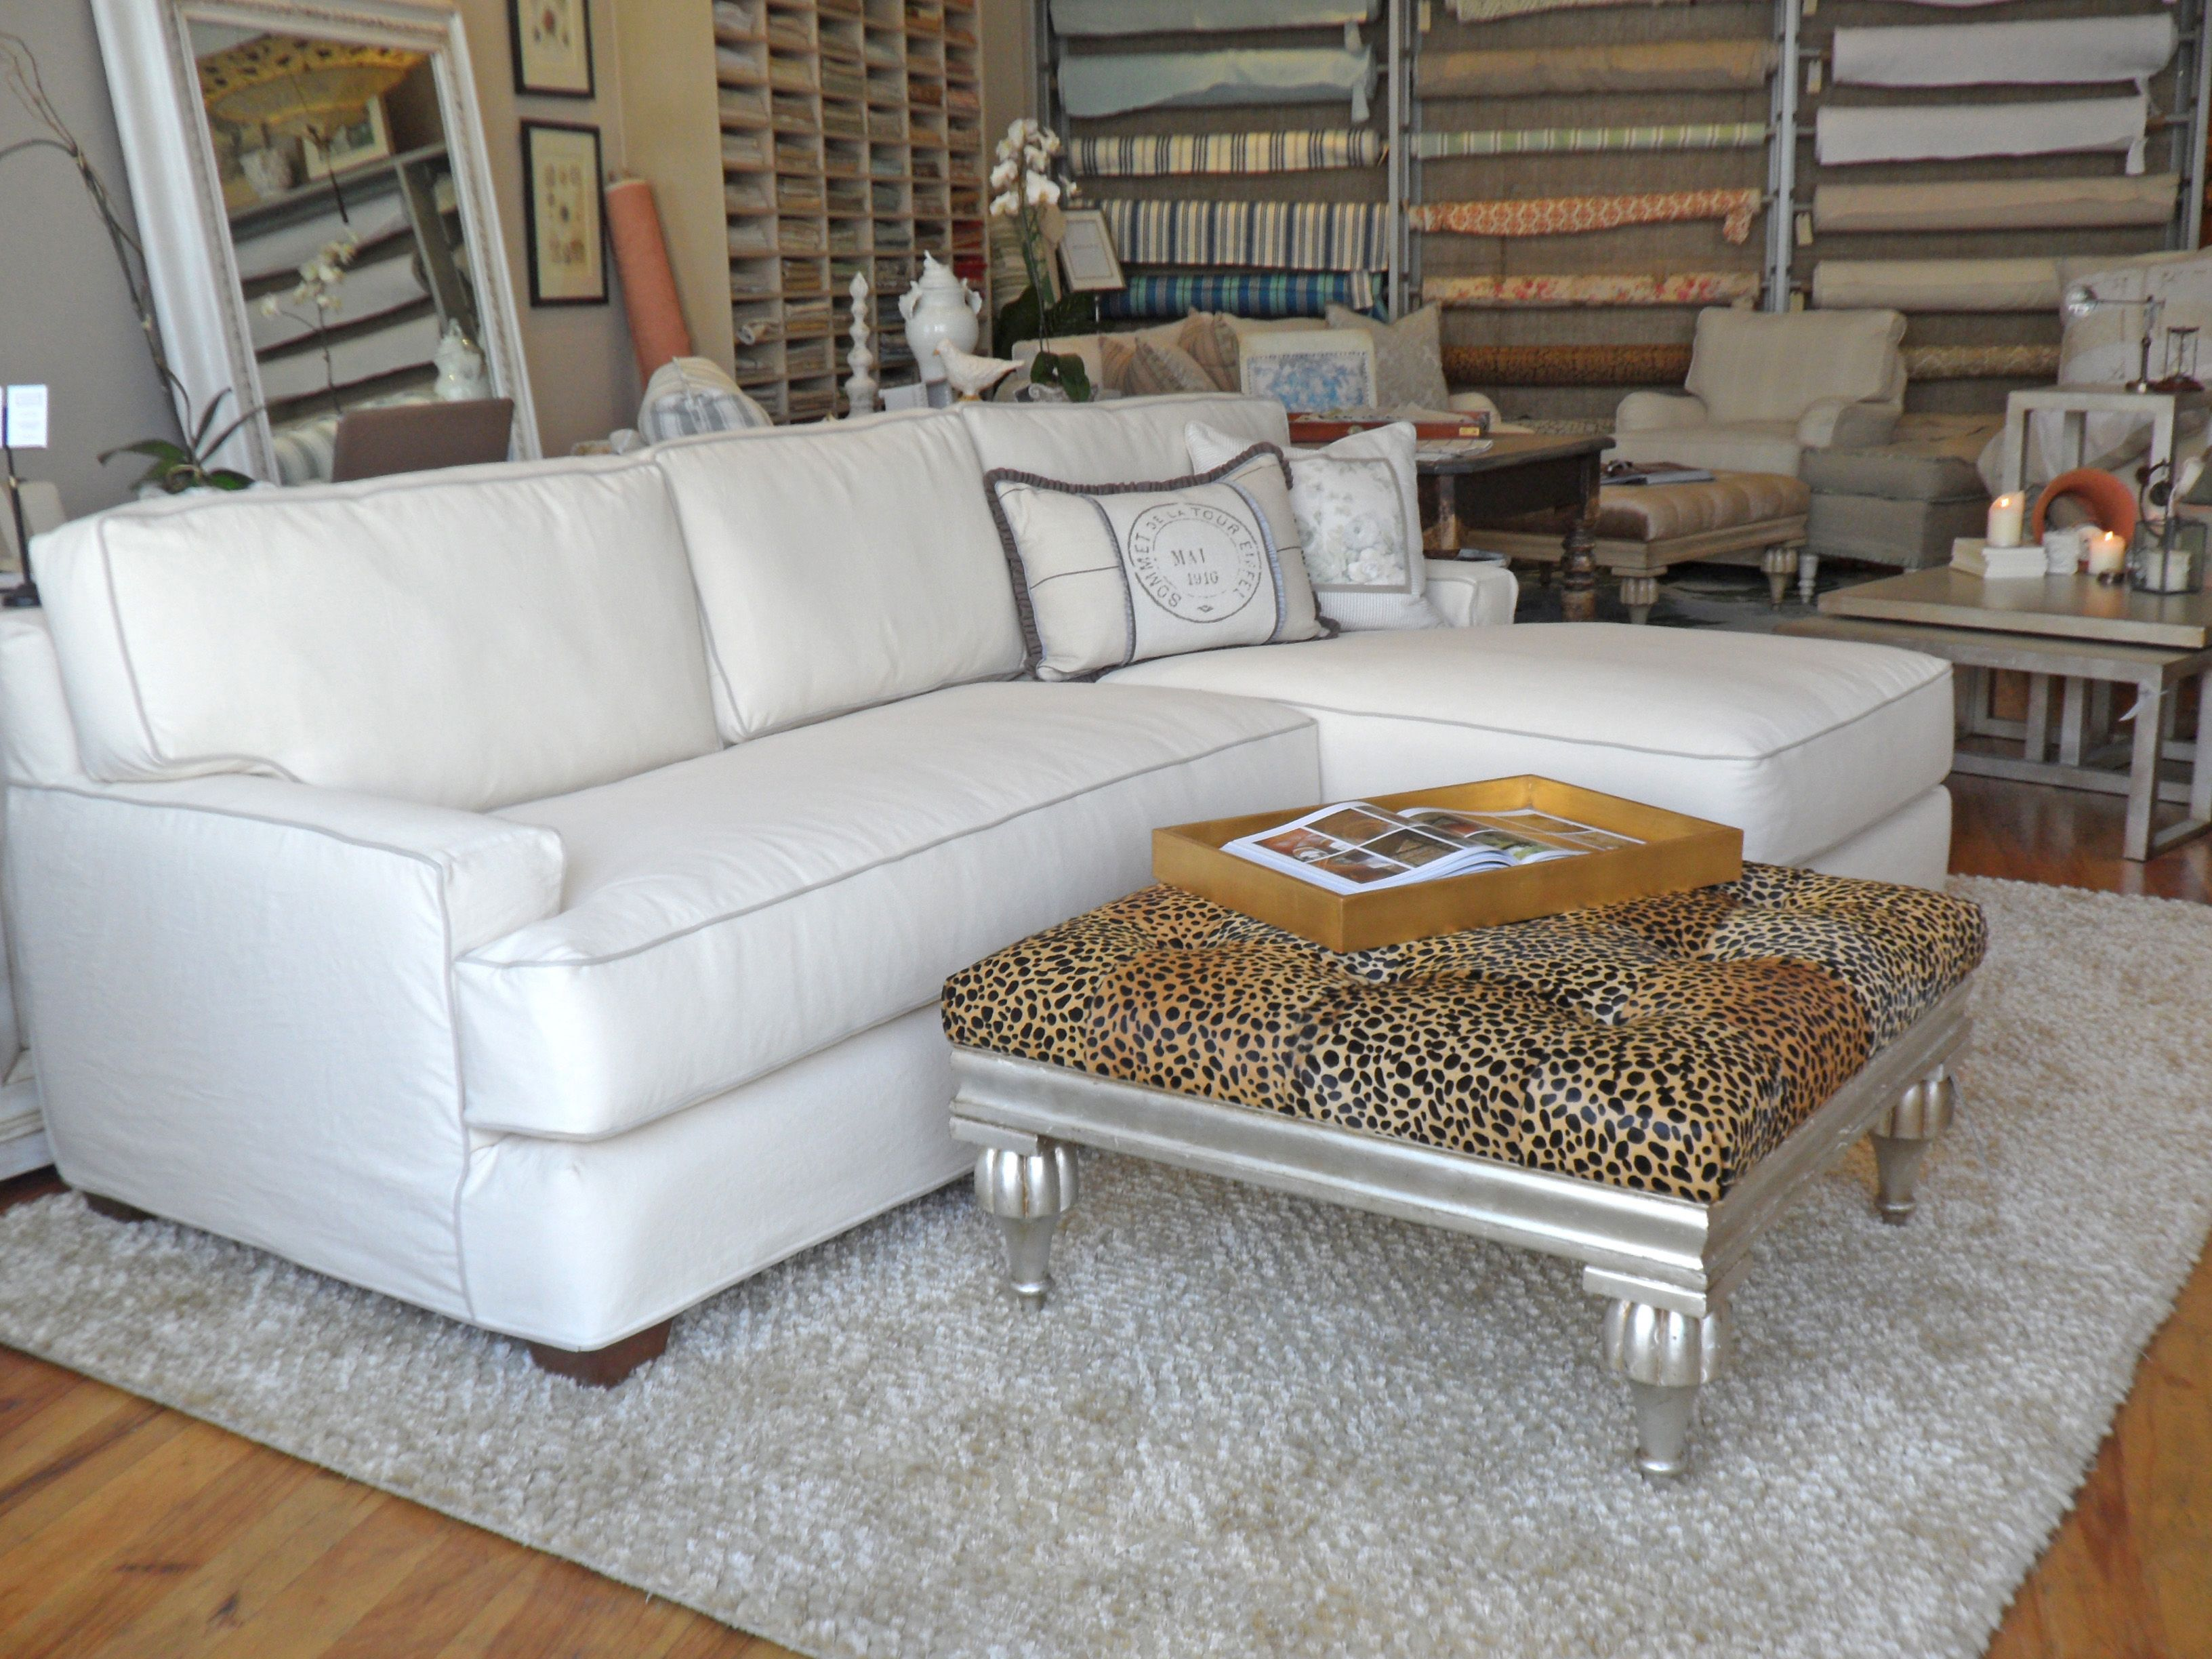 Quatrine White Slipcovered New Yorker Chaise Sectional